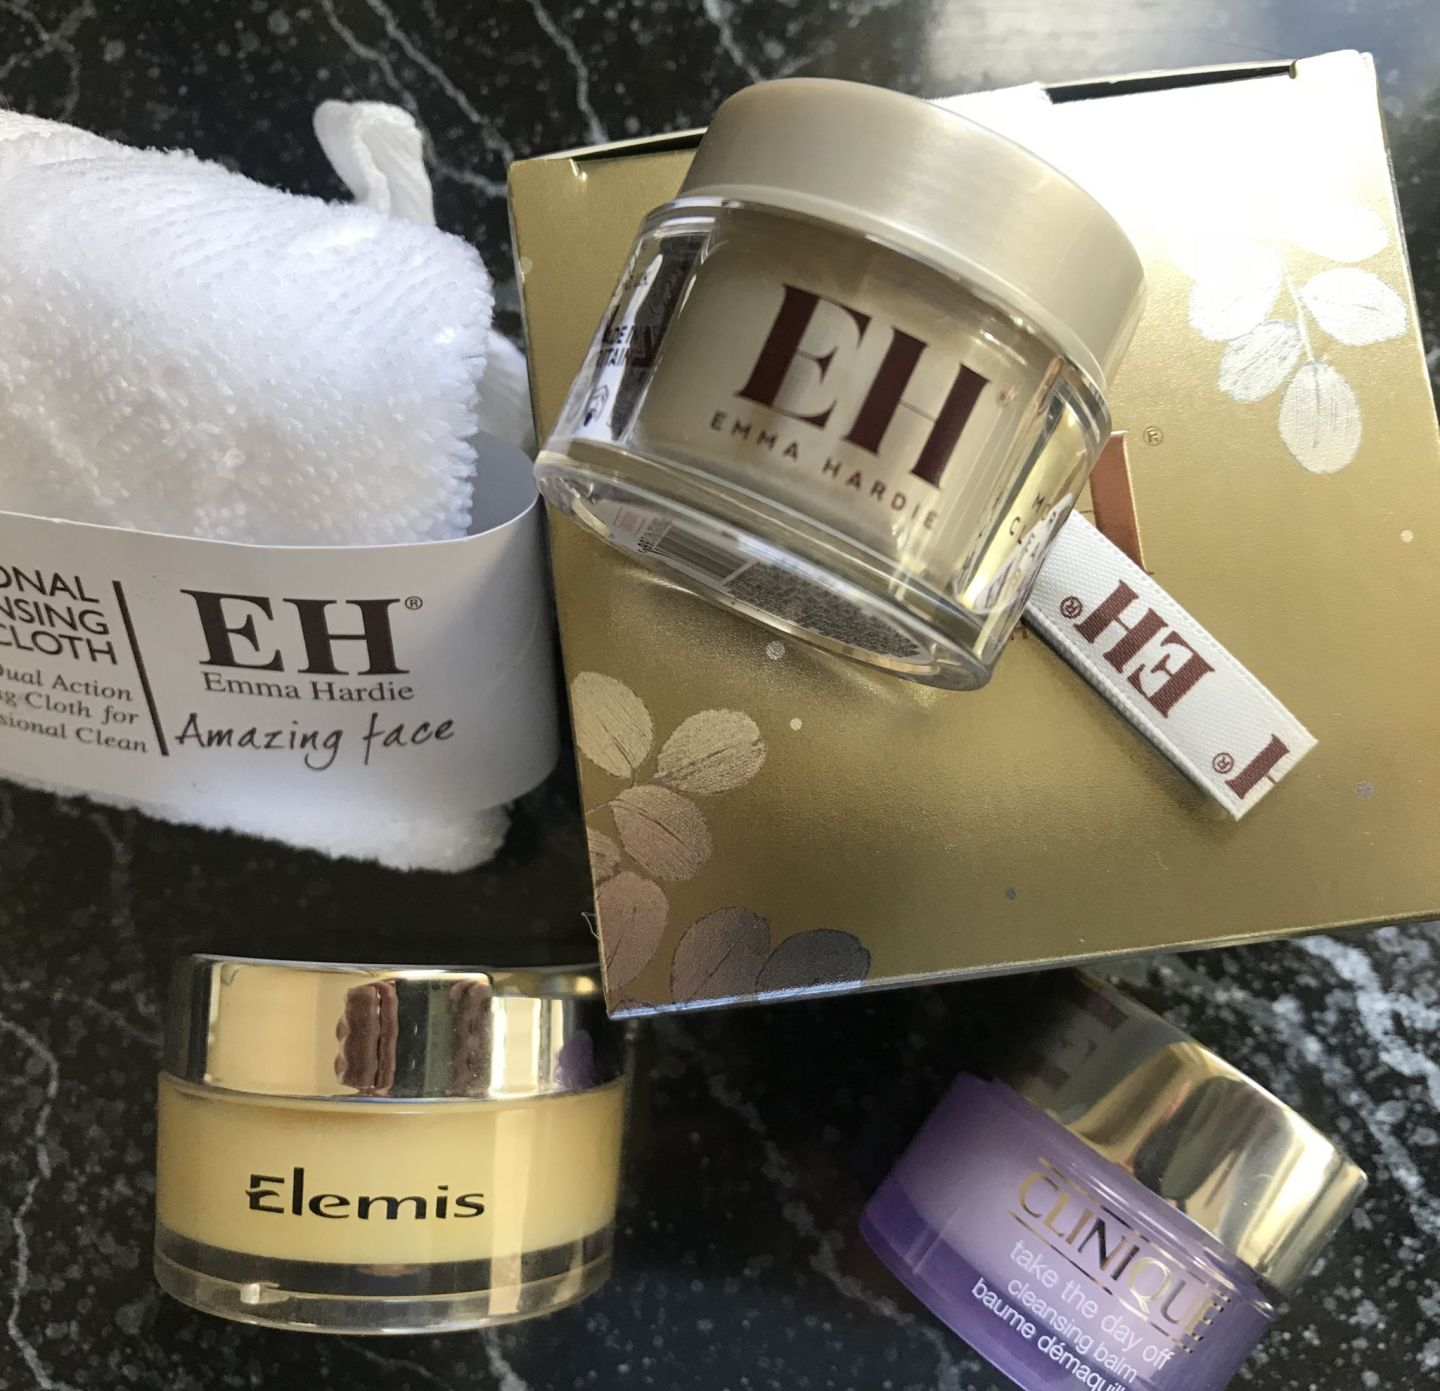 Cleansing Balms and face cloth